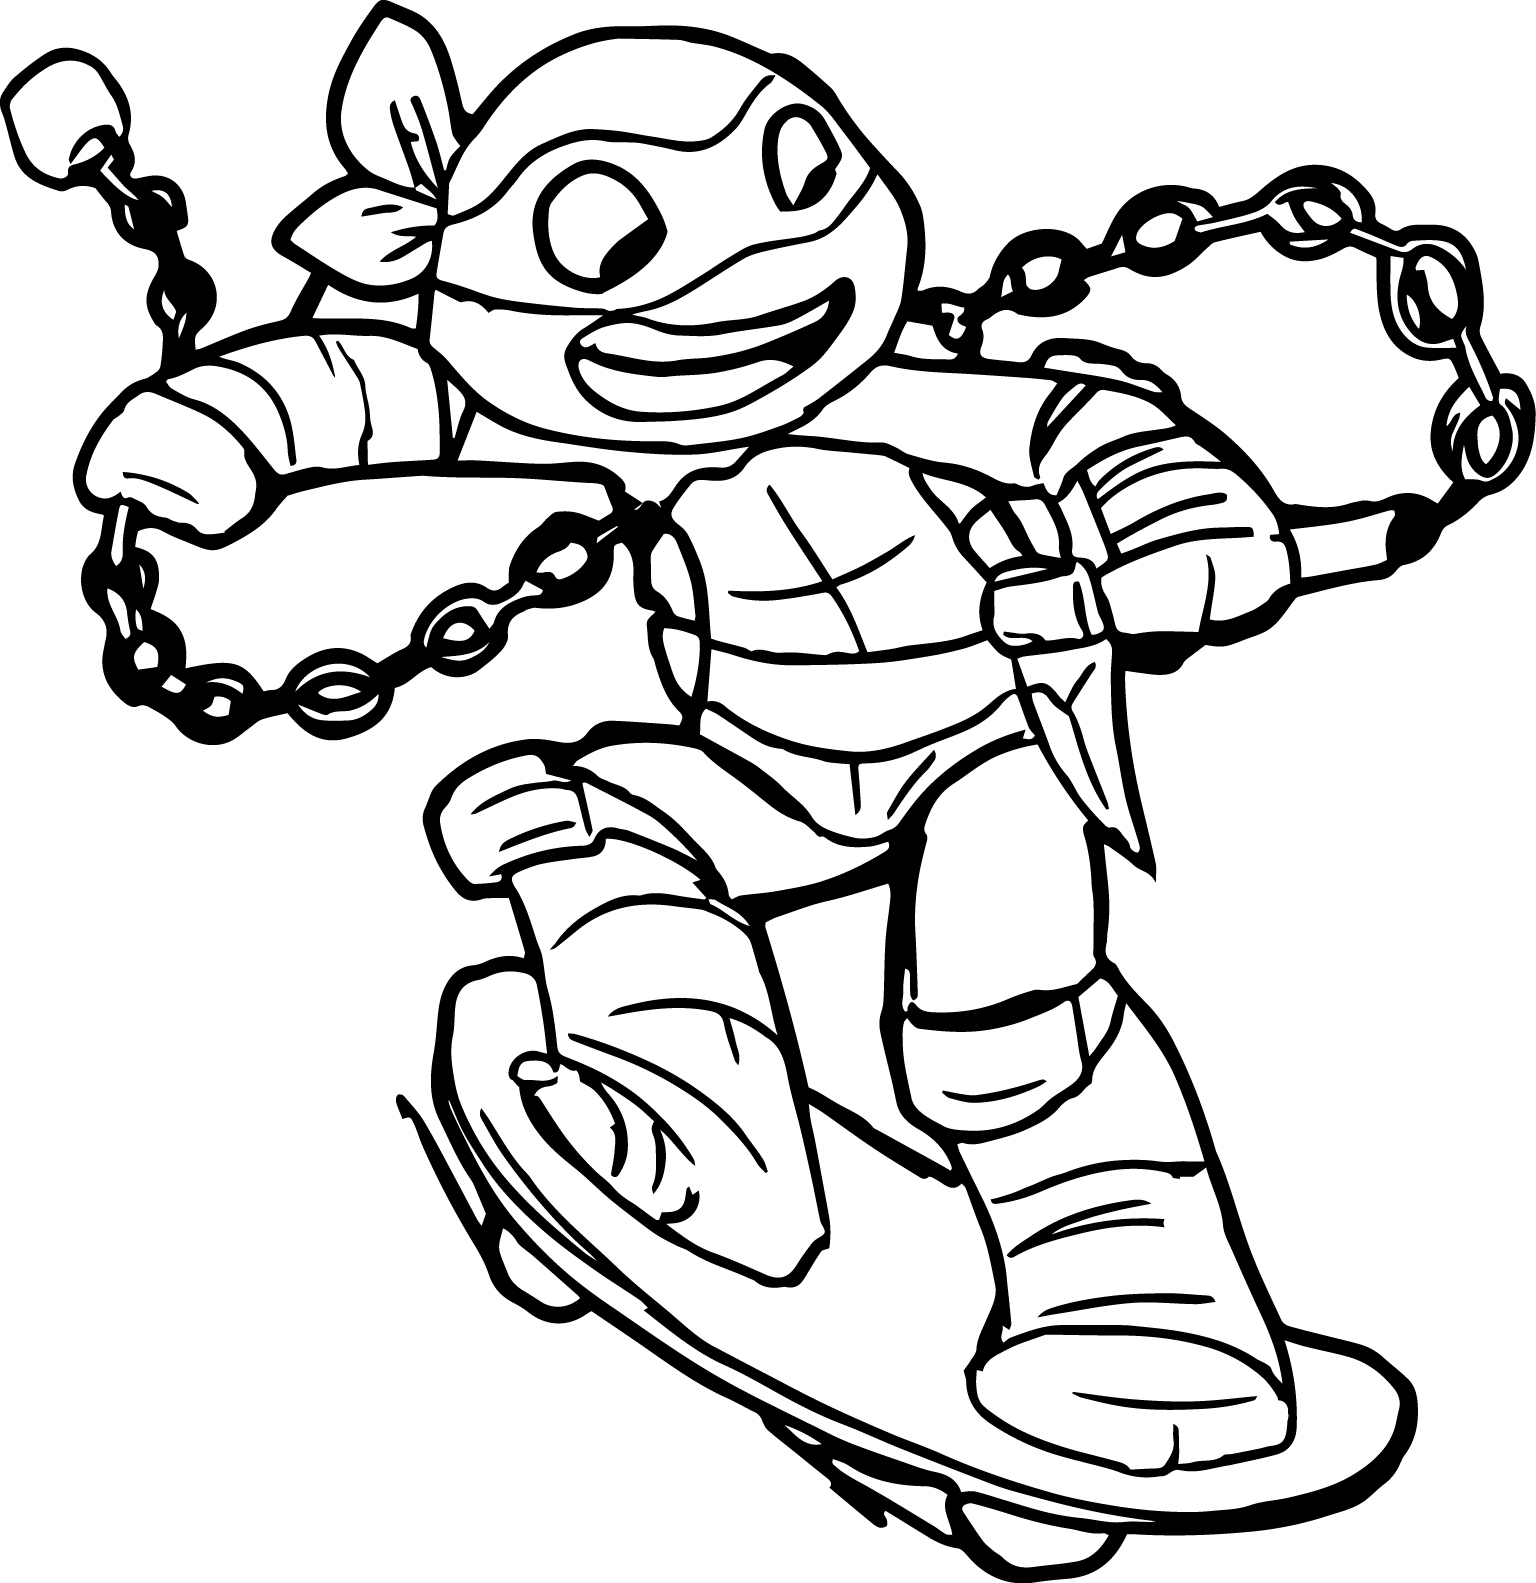 turtle pictures to color cute turtle coloring pages coloring home color pictures turtle to